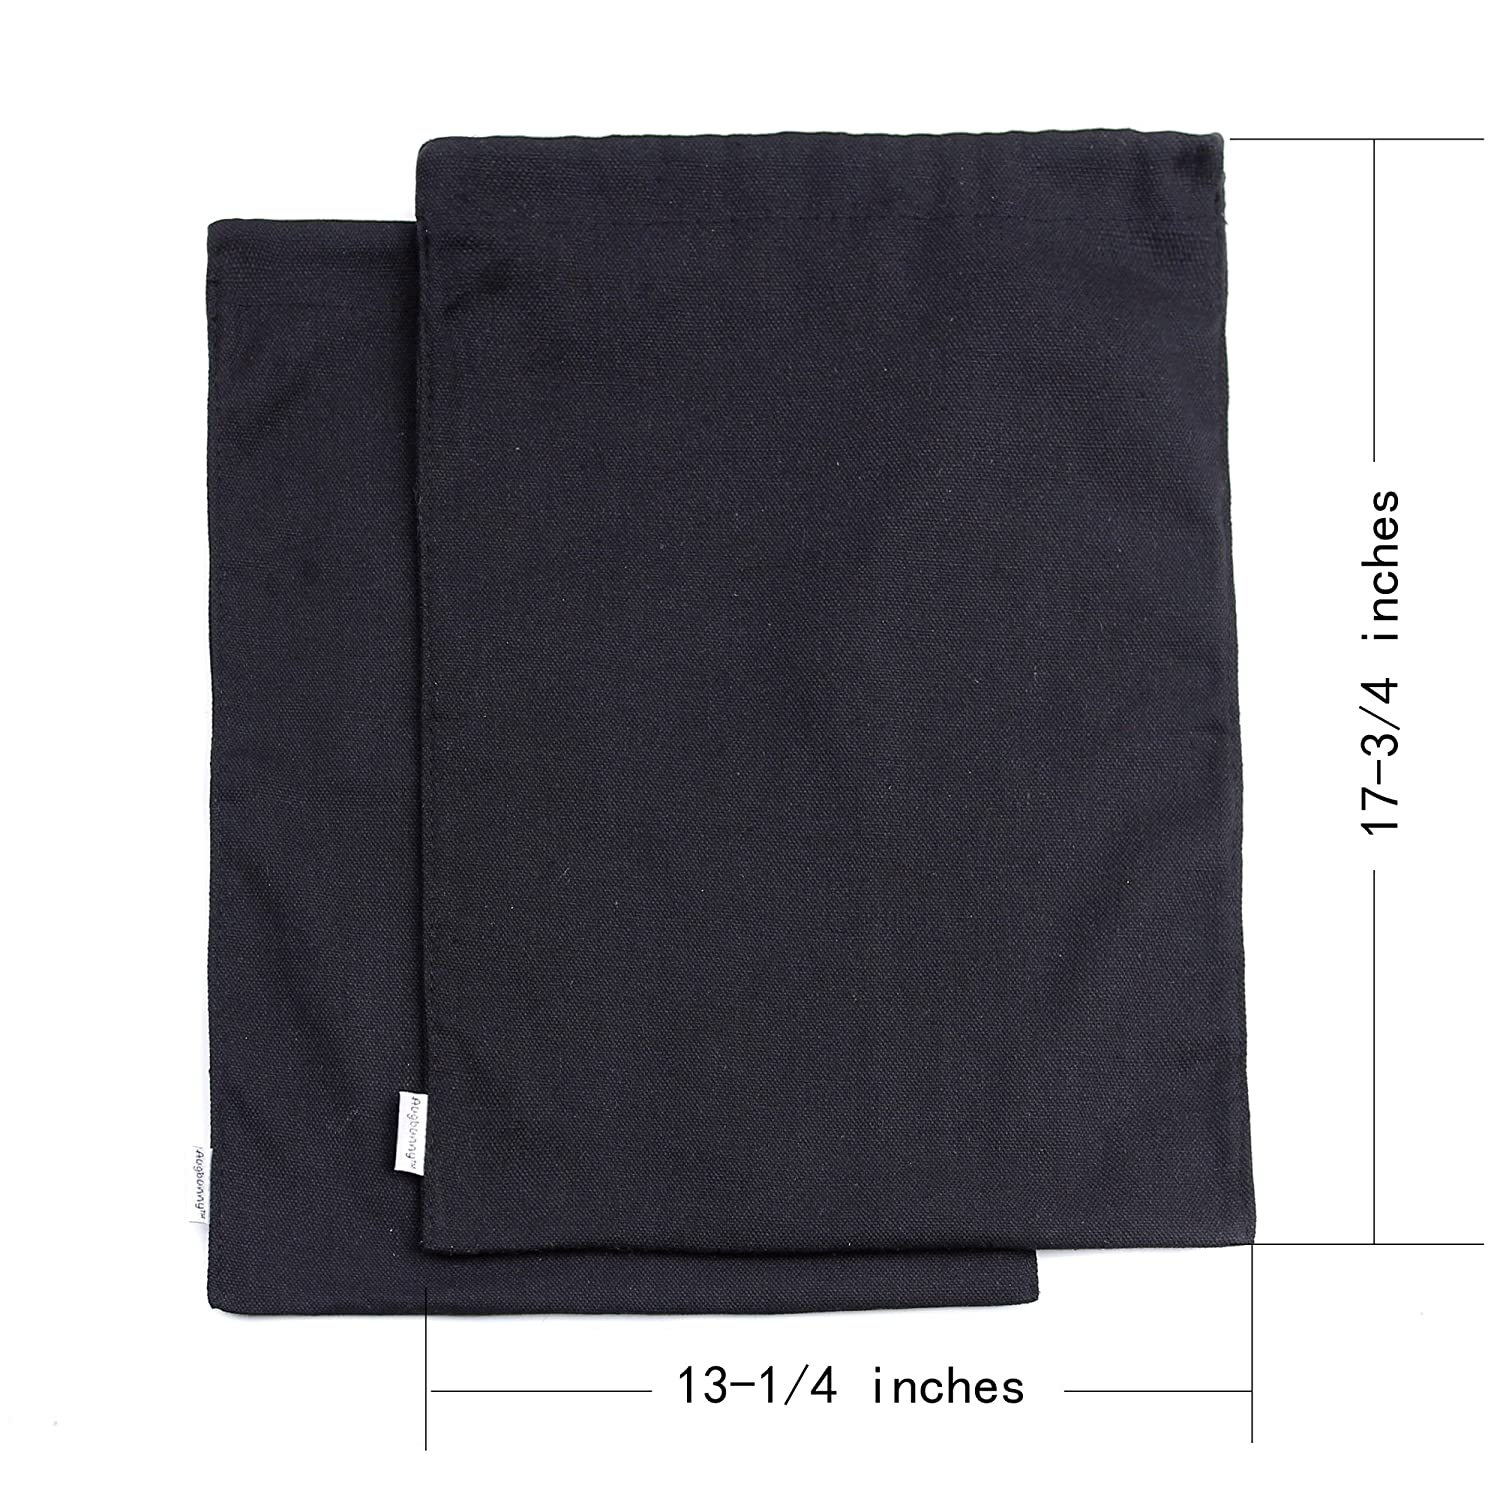 Augbunny Canvas 17-3//4 by 13-1//4-inch Travel Shoe Bag 2-pack Linluk B-12B